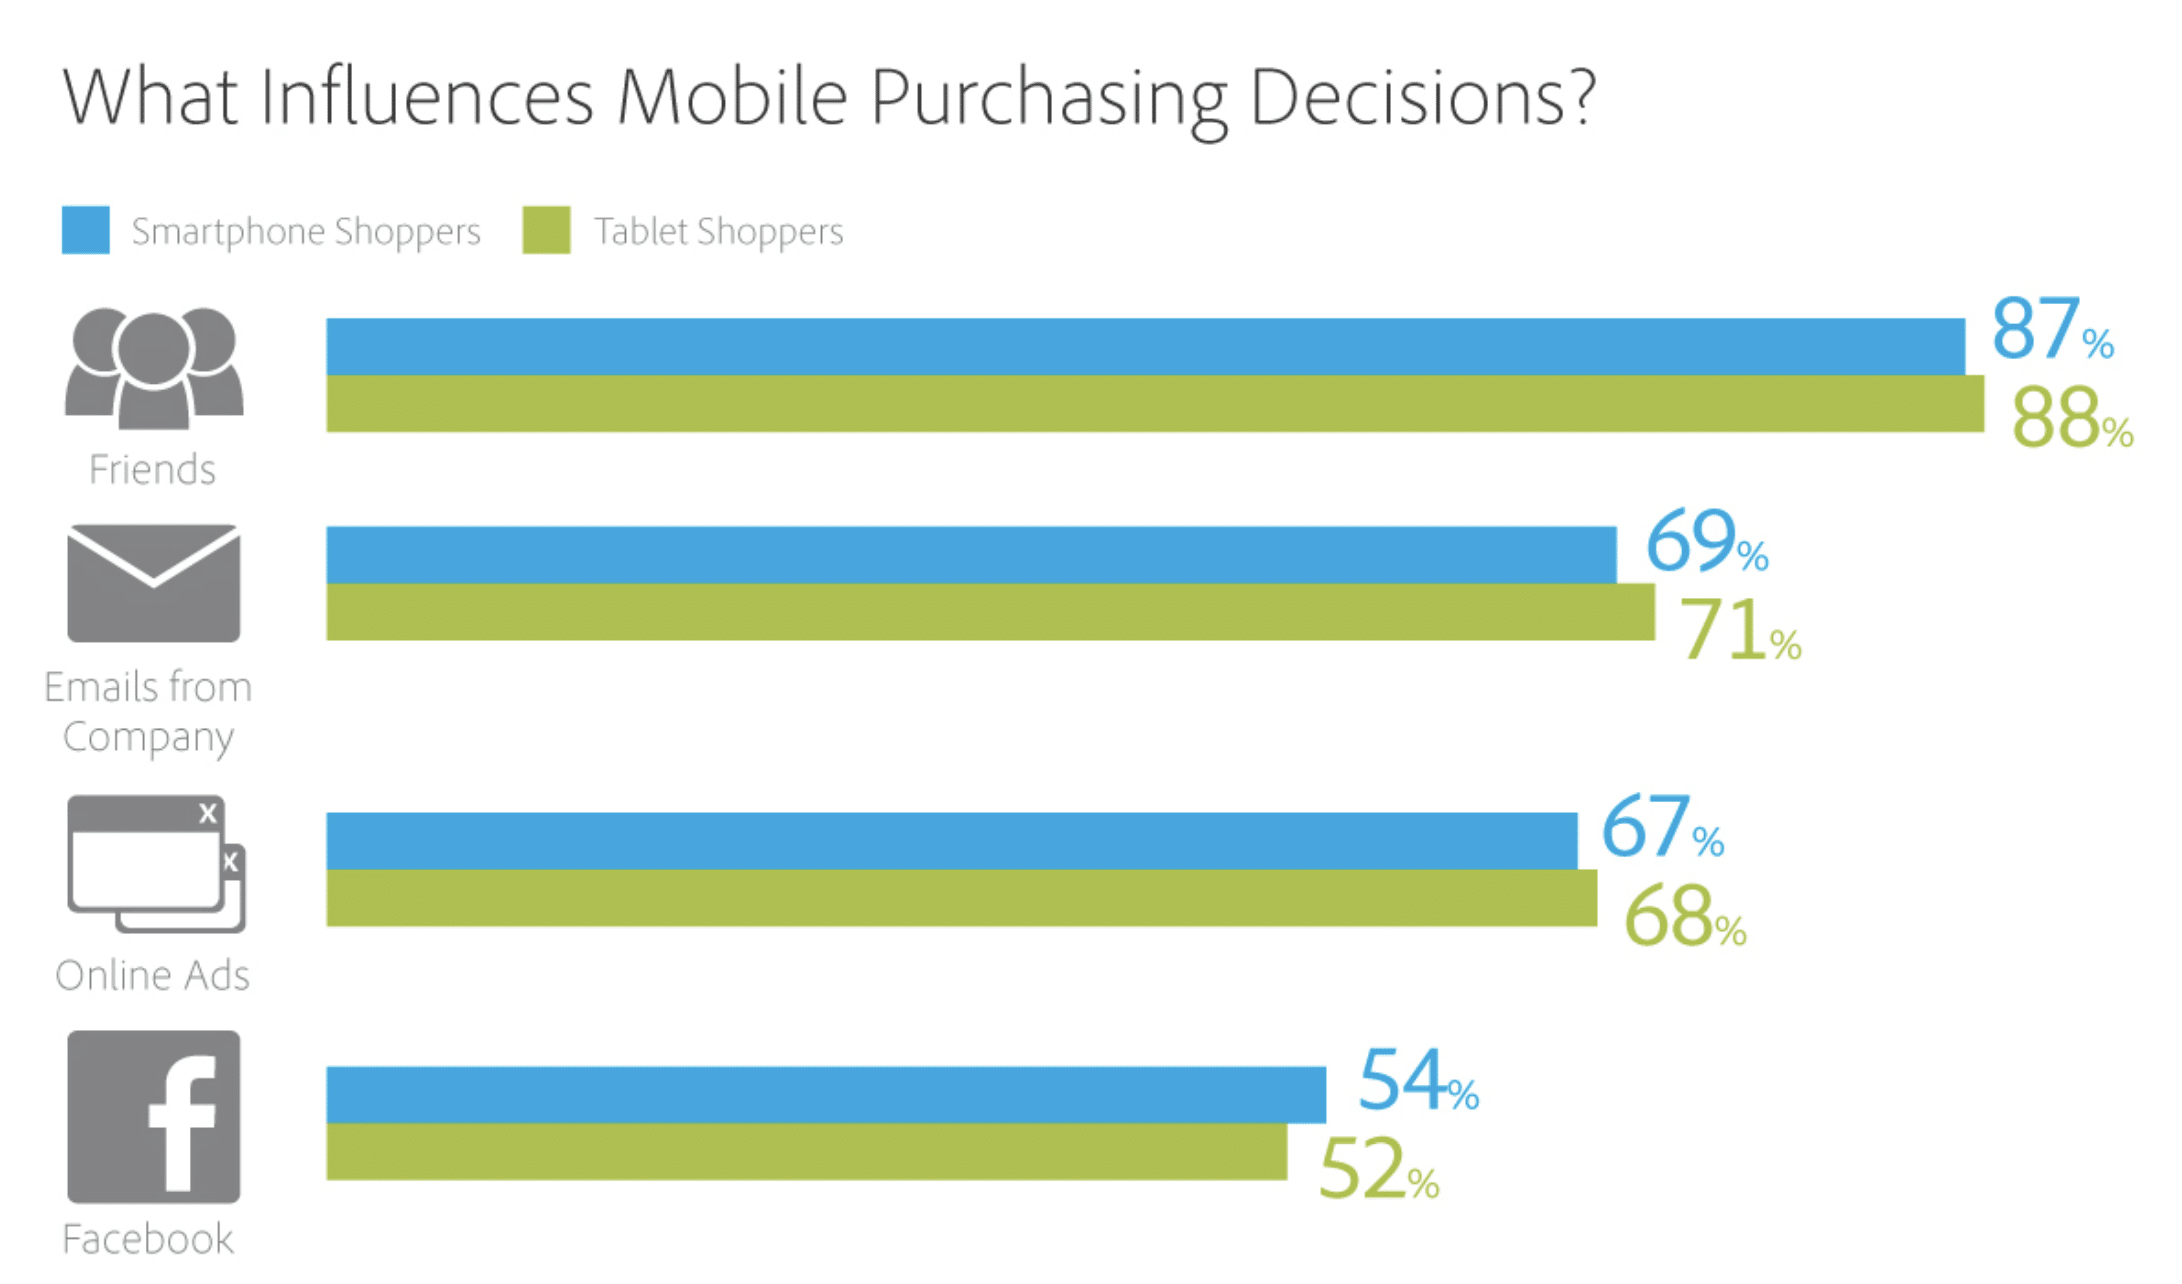 Mobile purchasing decisions